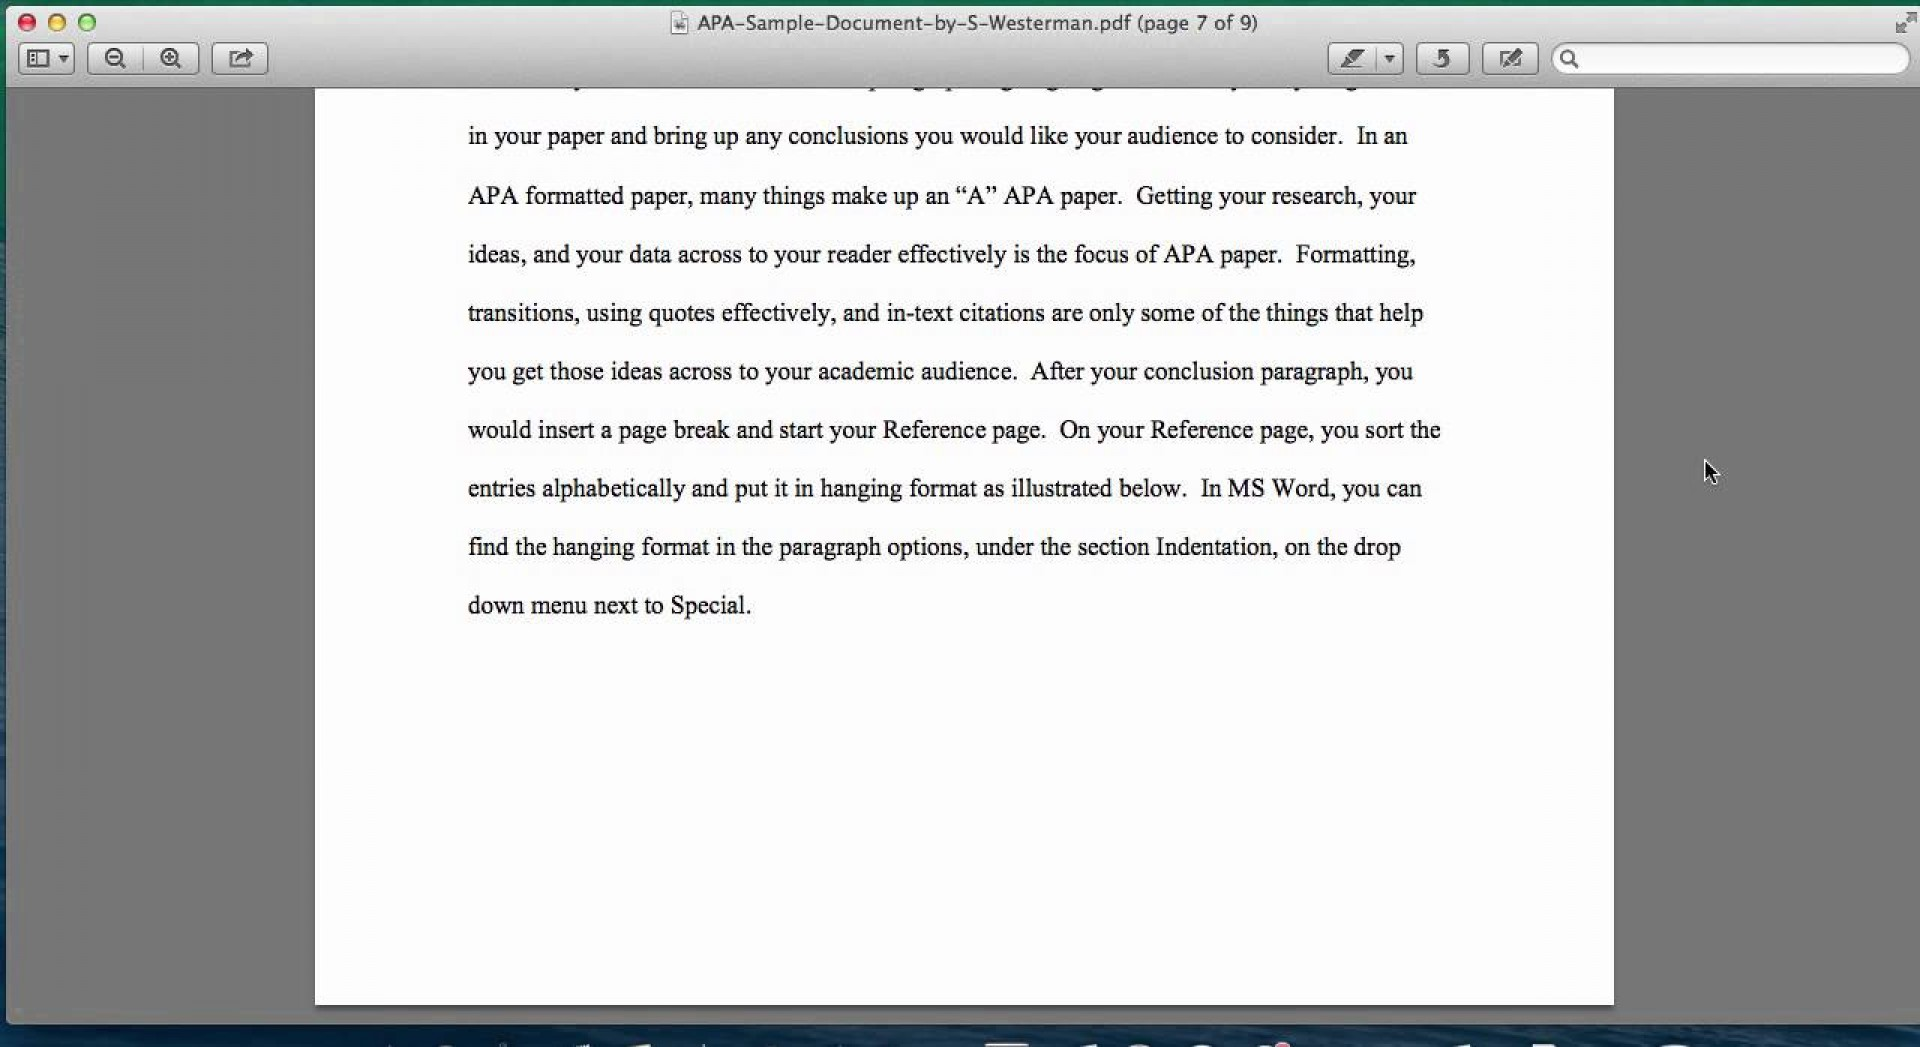 006 Maxresdefault Research Paper How To Put In Apa Impressive A Format 1920